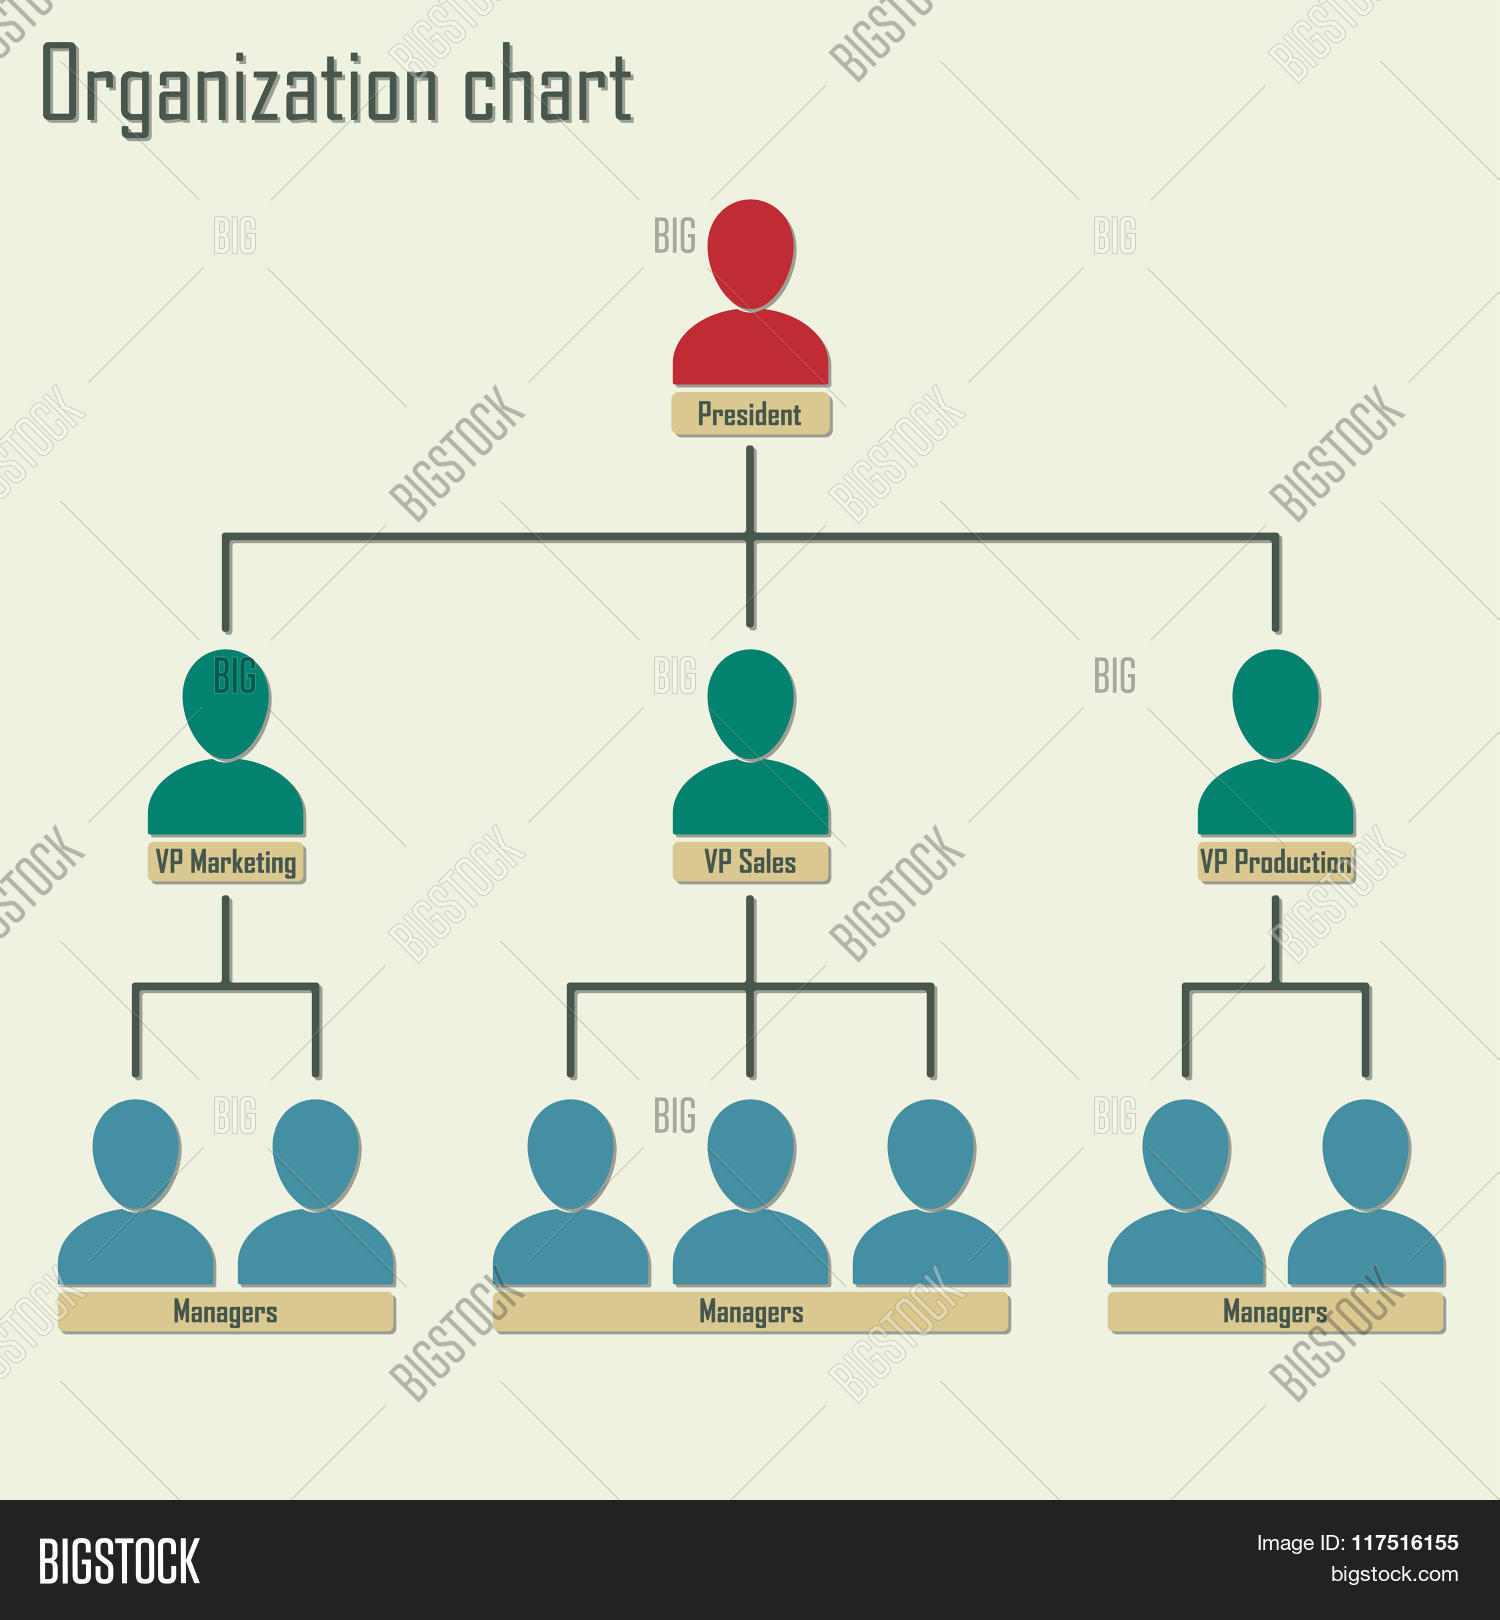 Business Framework Pyramid Diagram Hierarchy Map Org Chart Powerpoint Presentation Powerpoint Templates